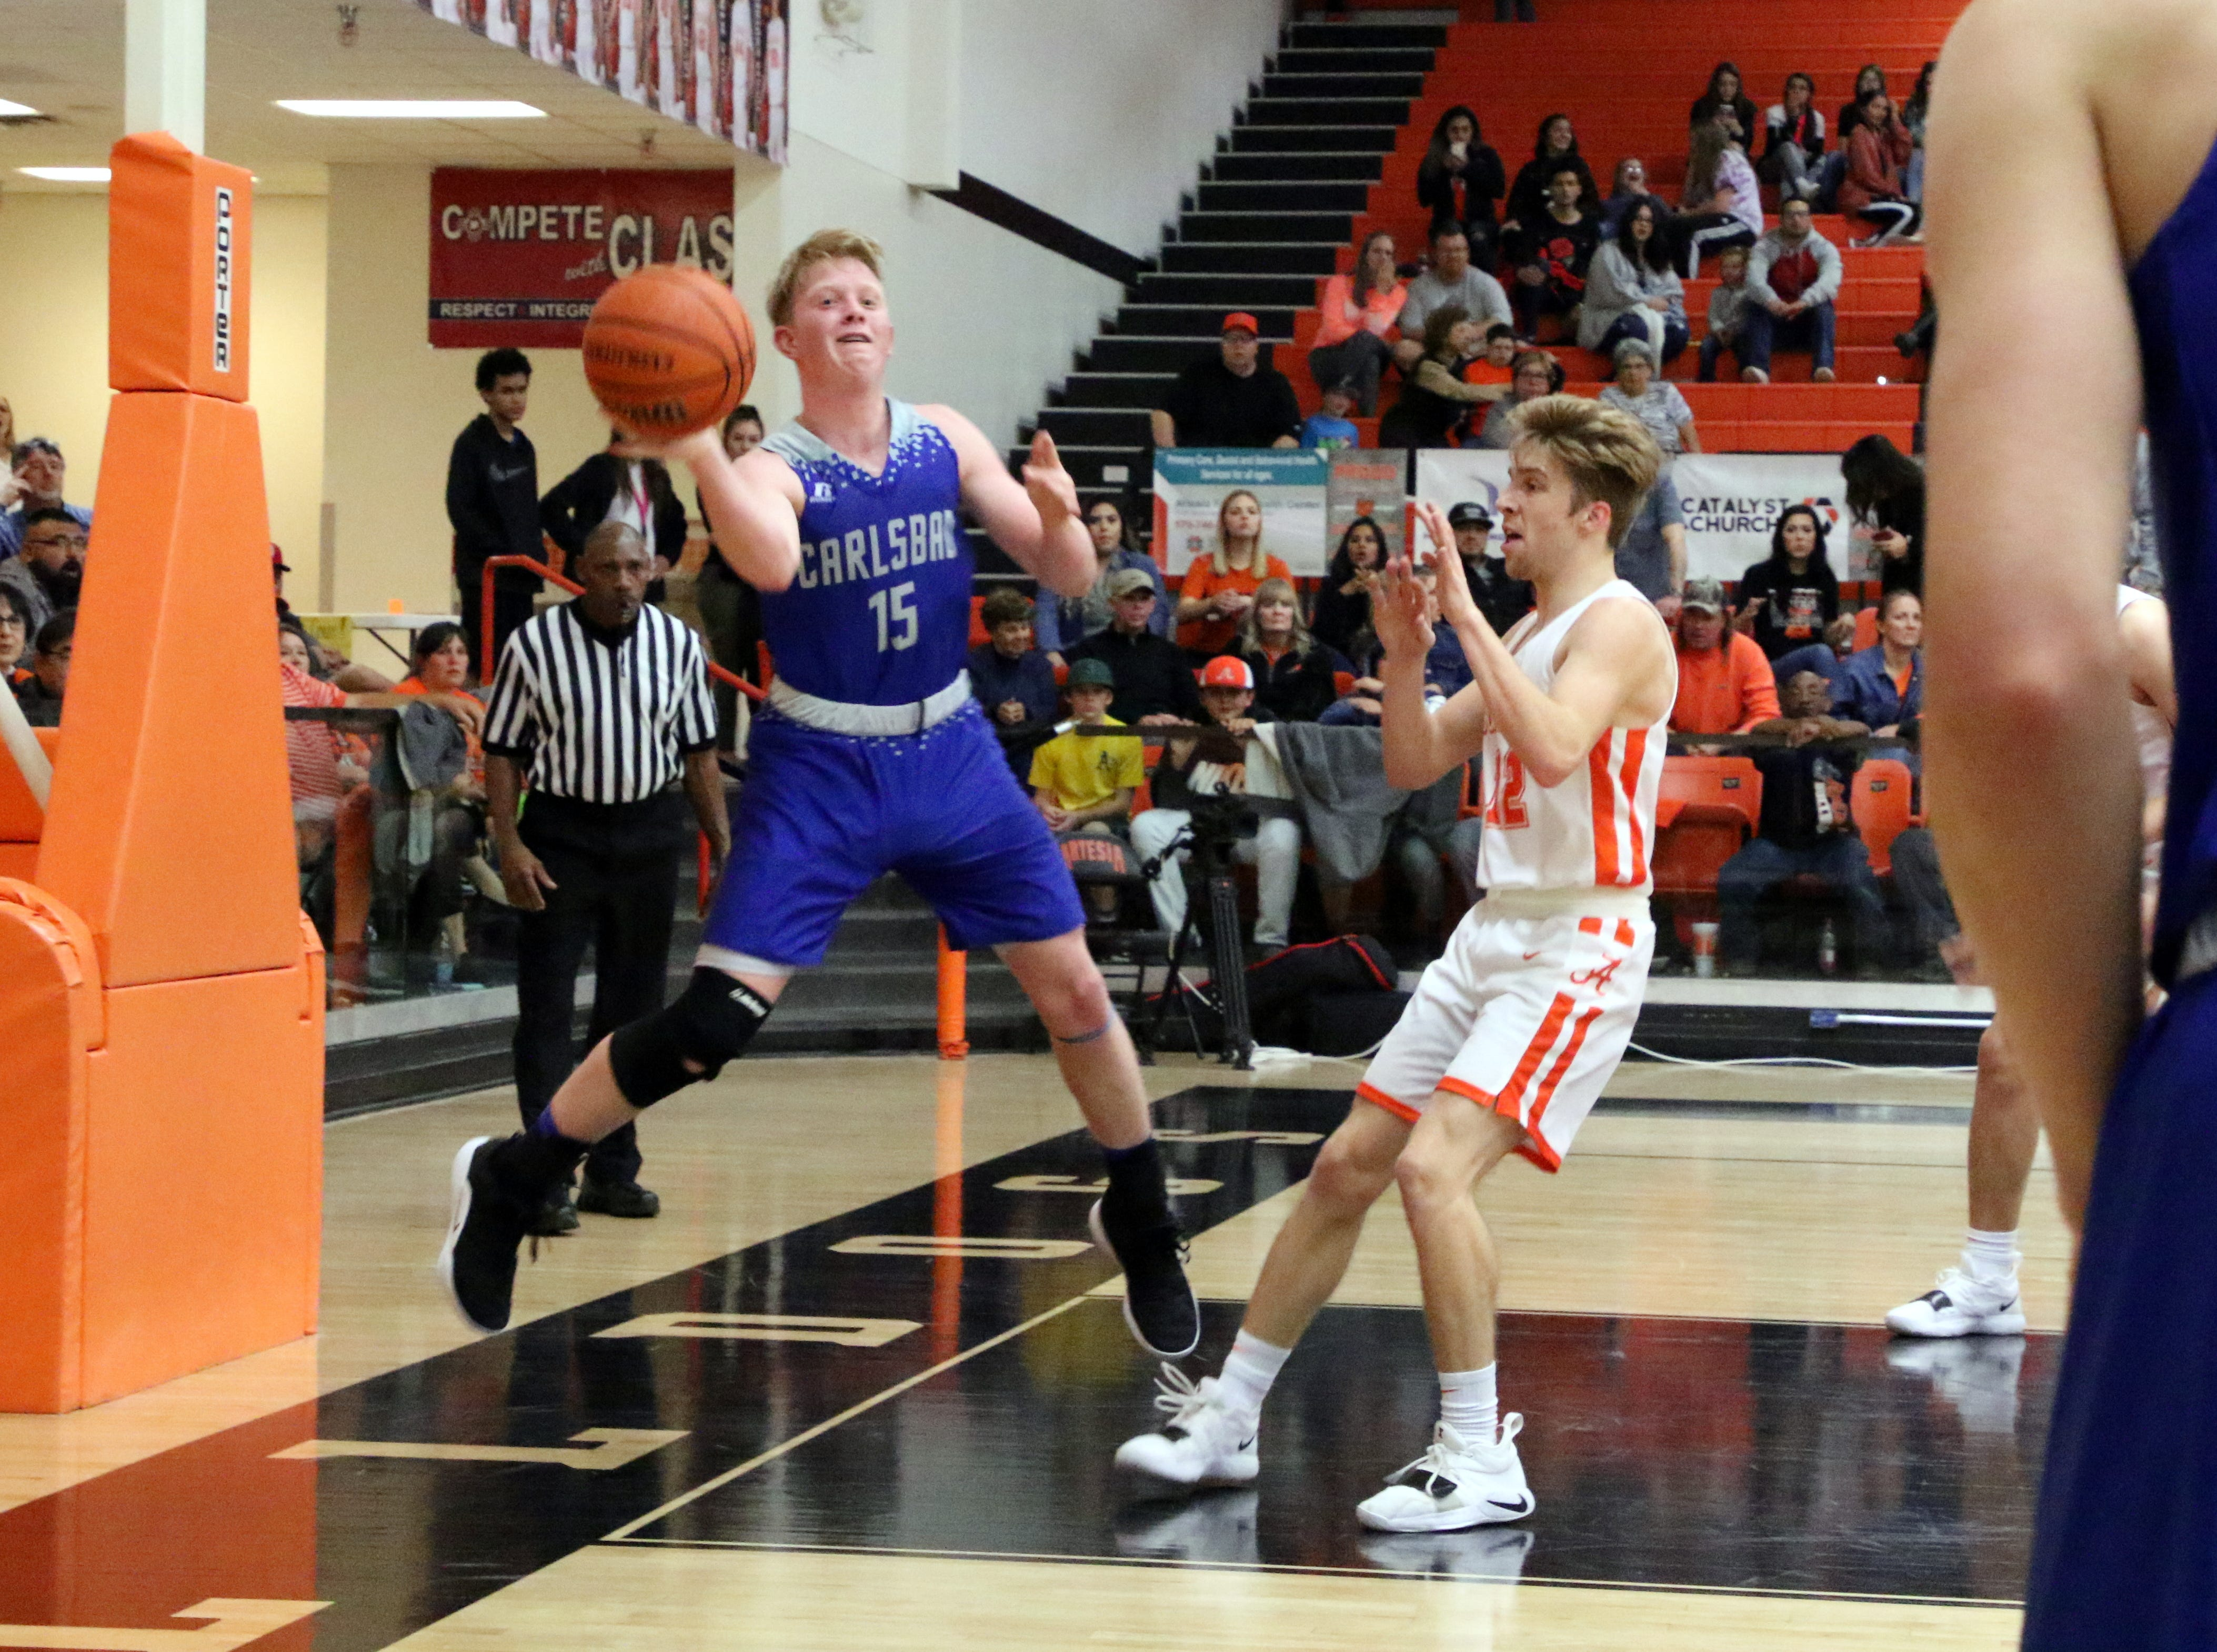 Carlsbad's Andrew Miller saves a ball from going out of bounds during Friday's game against Artesia. Carlsbad swept the season series with a 59-56 win.